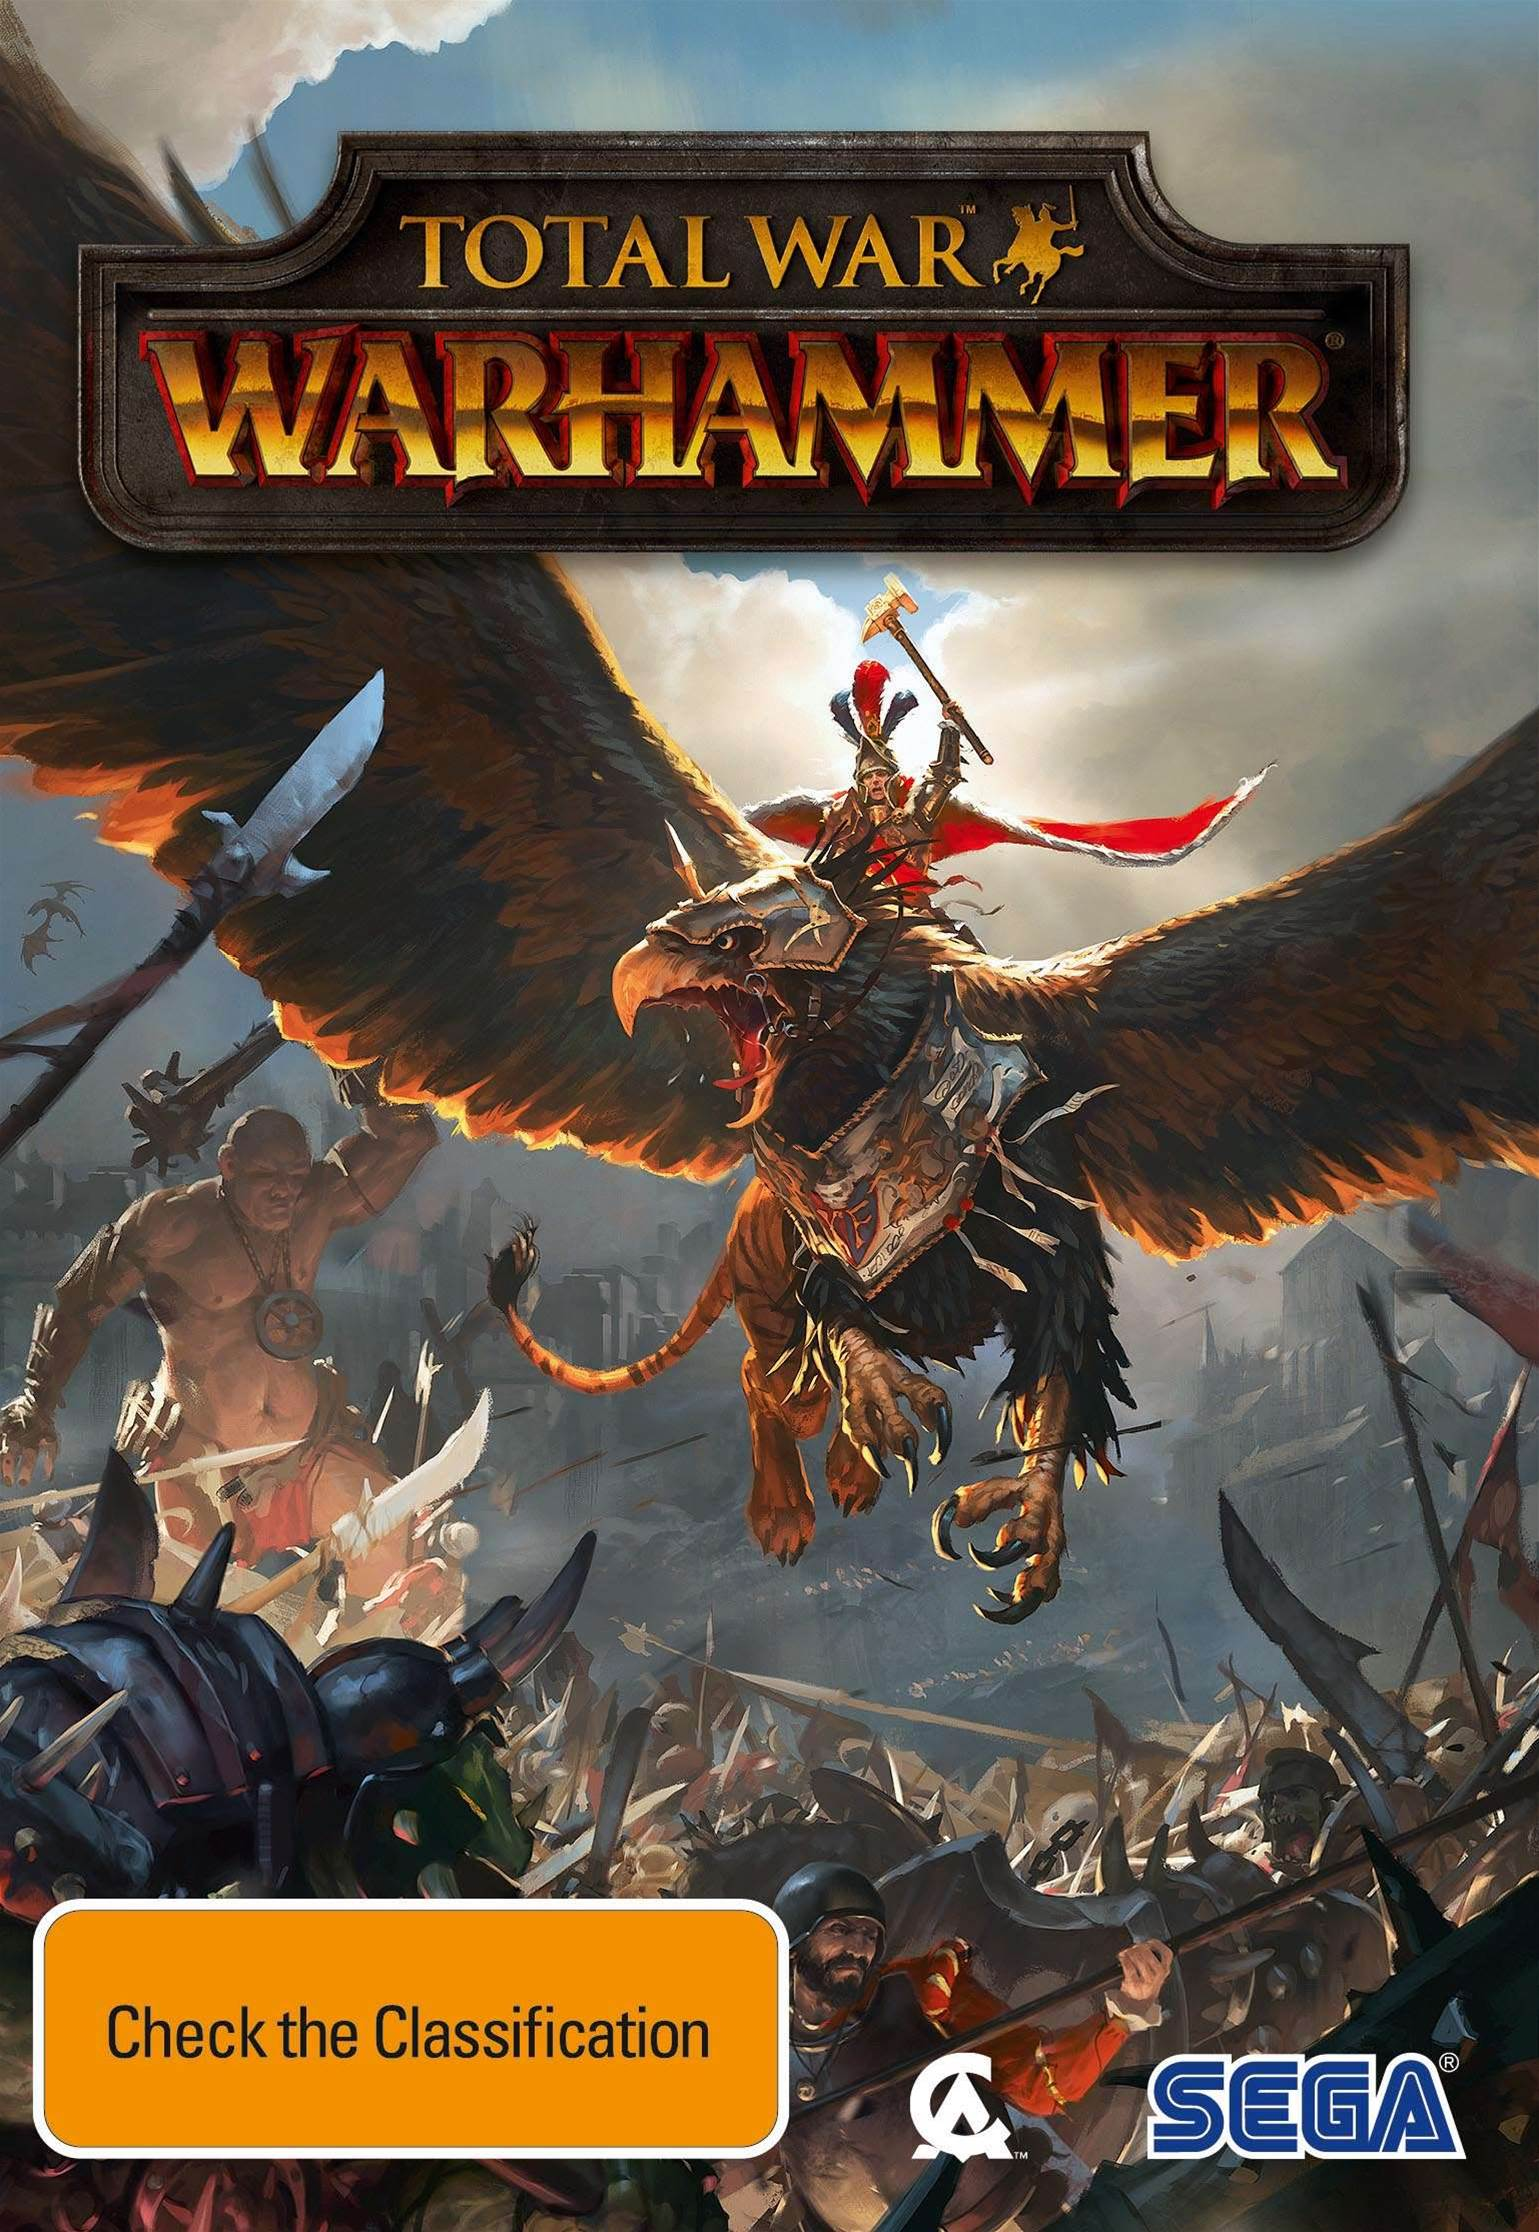 Total War: Warhammer delayed by one month